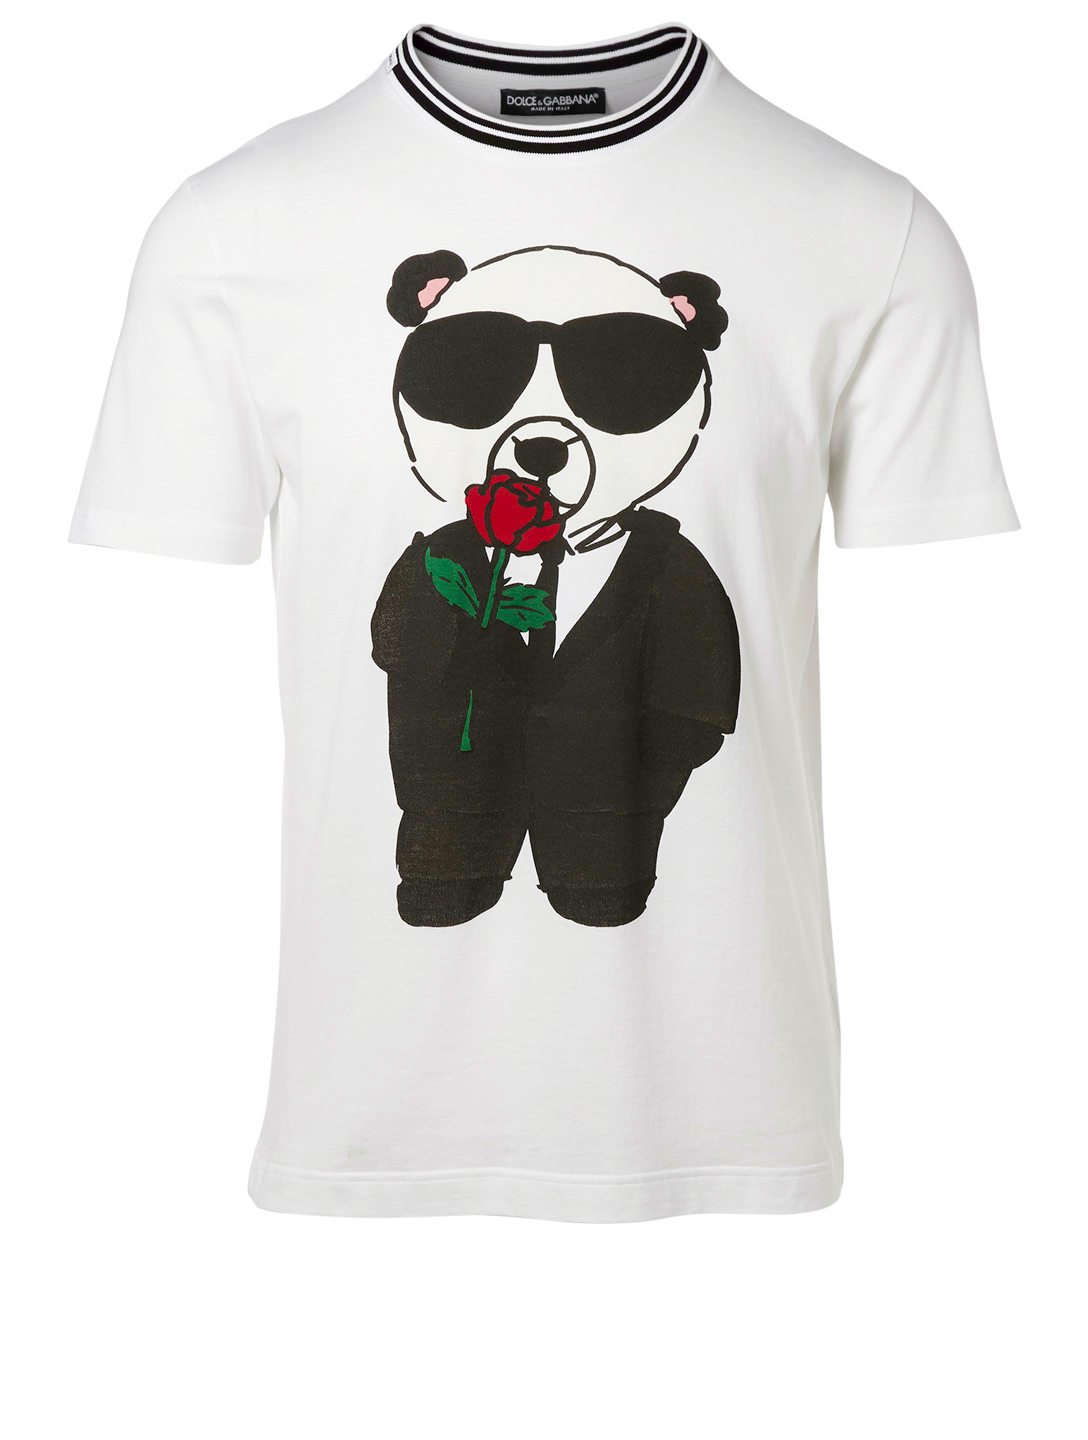 DOLCE & GABBANA Panda Rose T-Shirt Men's White